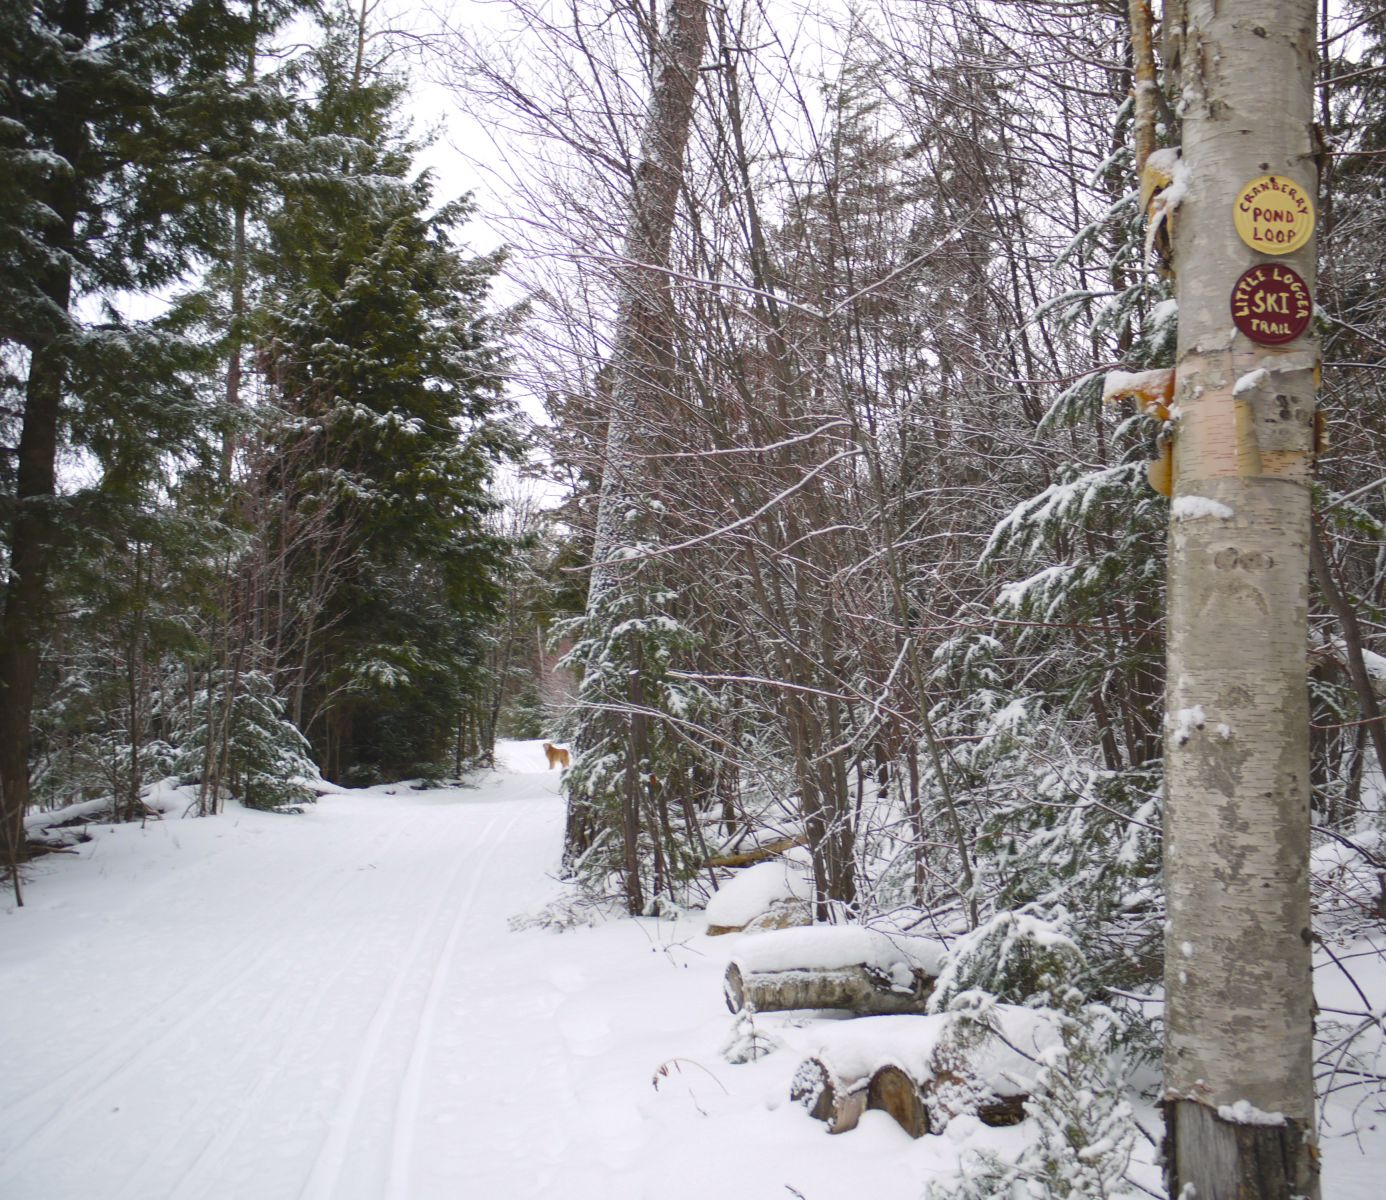 Homemade markers are set up throughout the trail network.